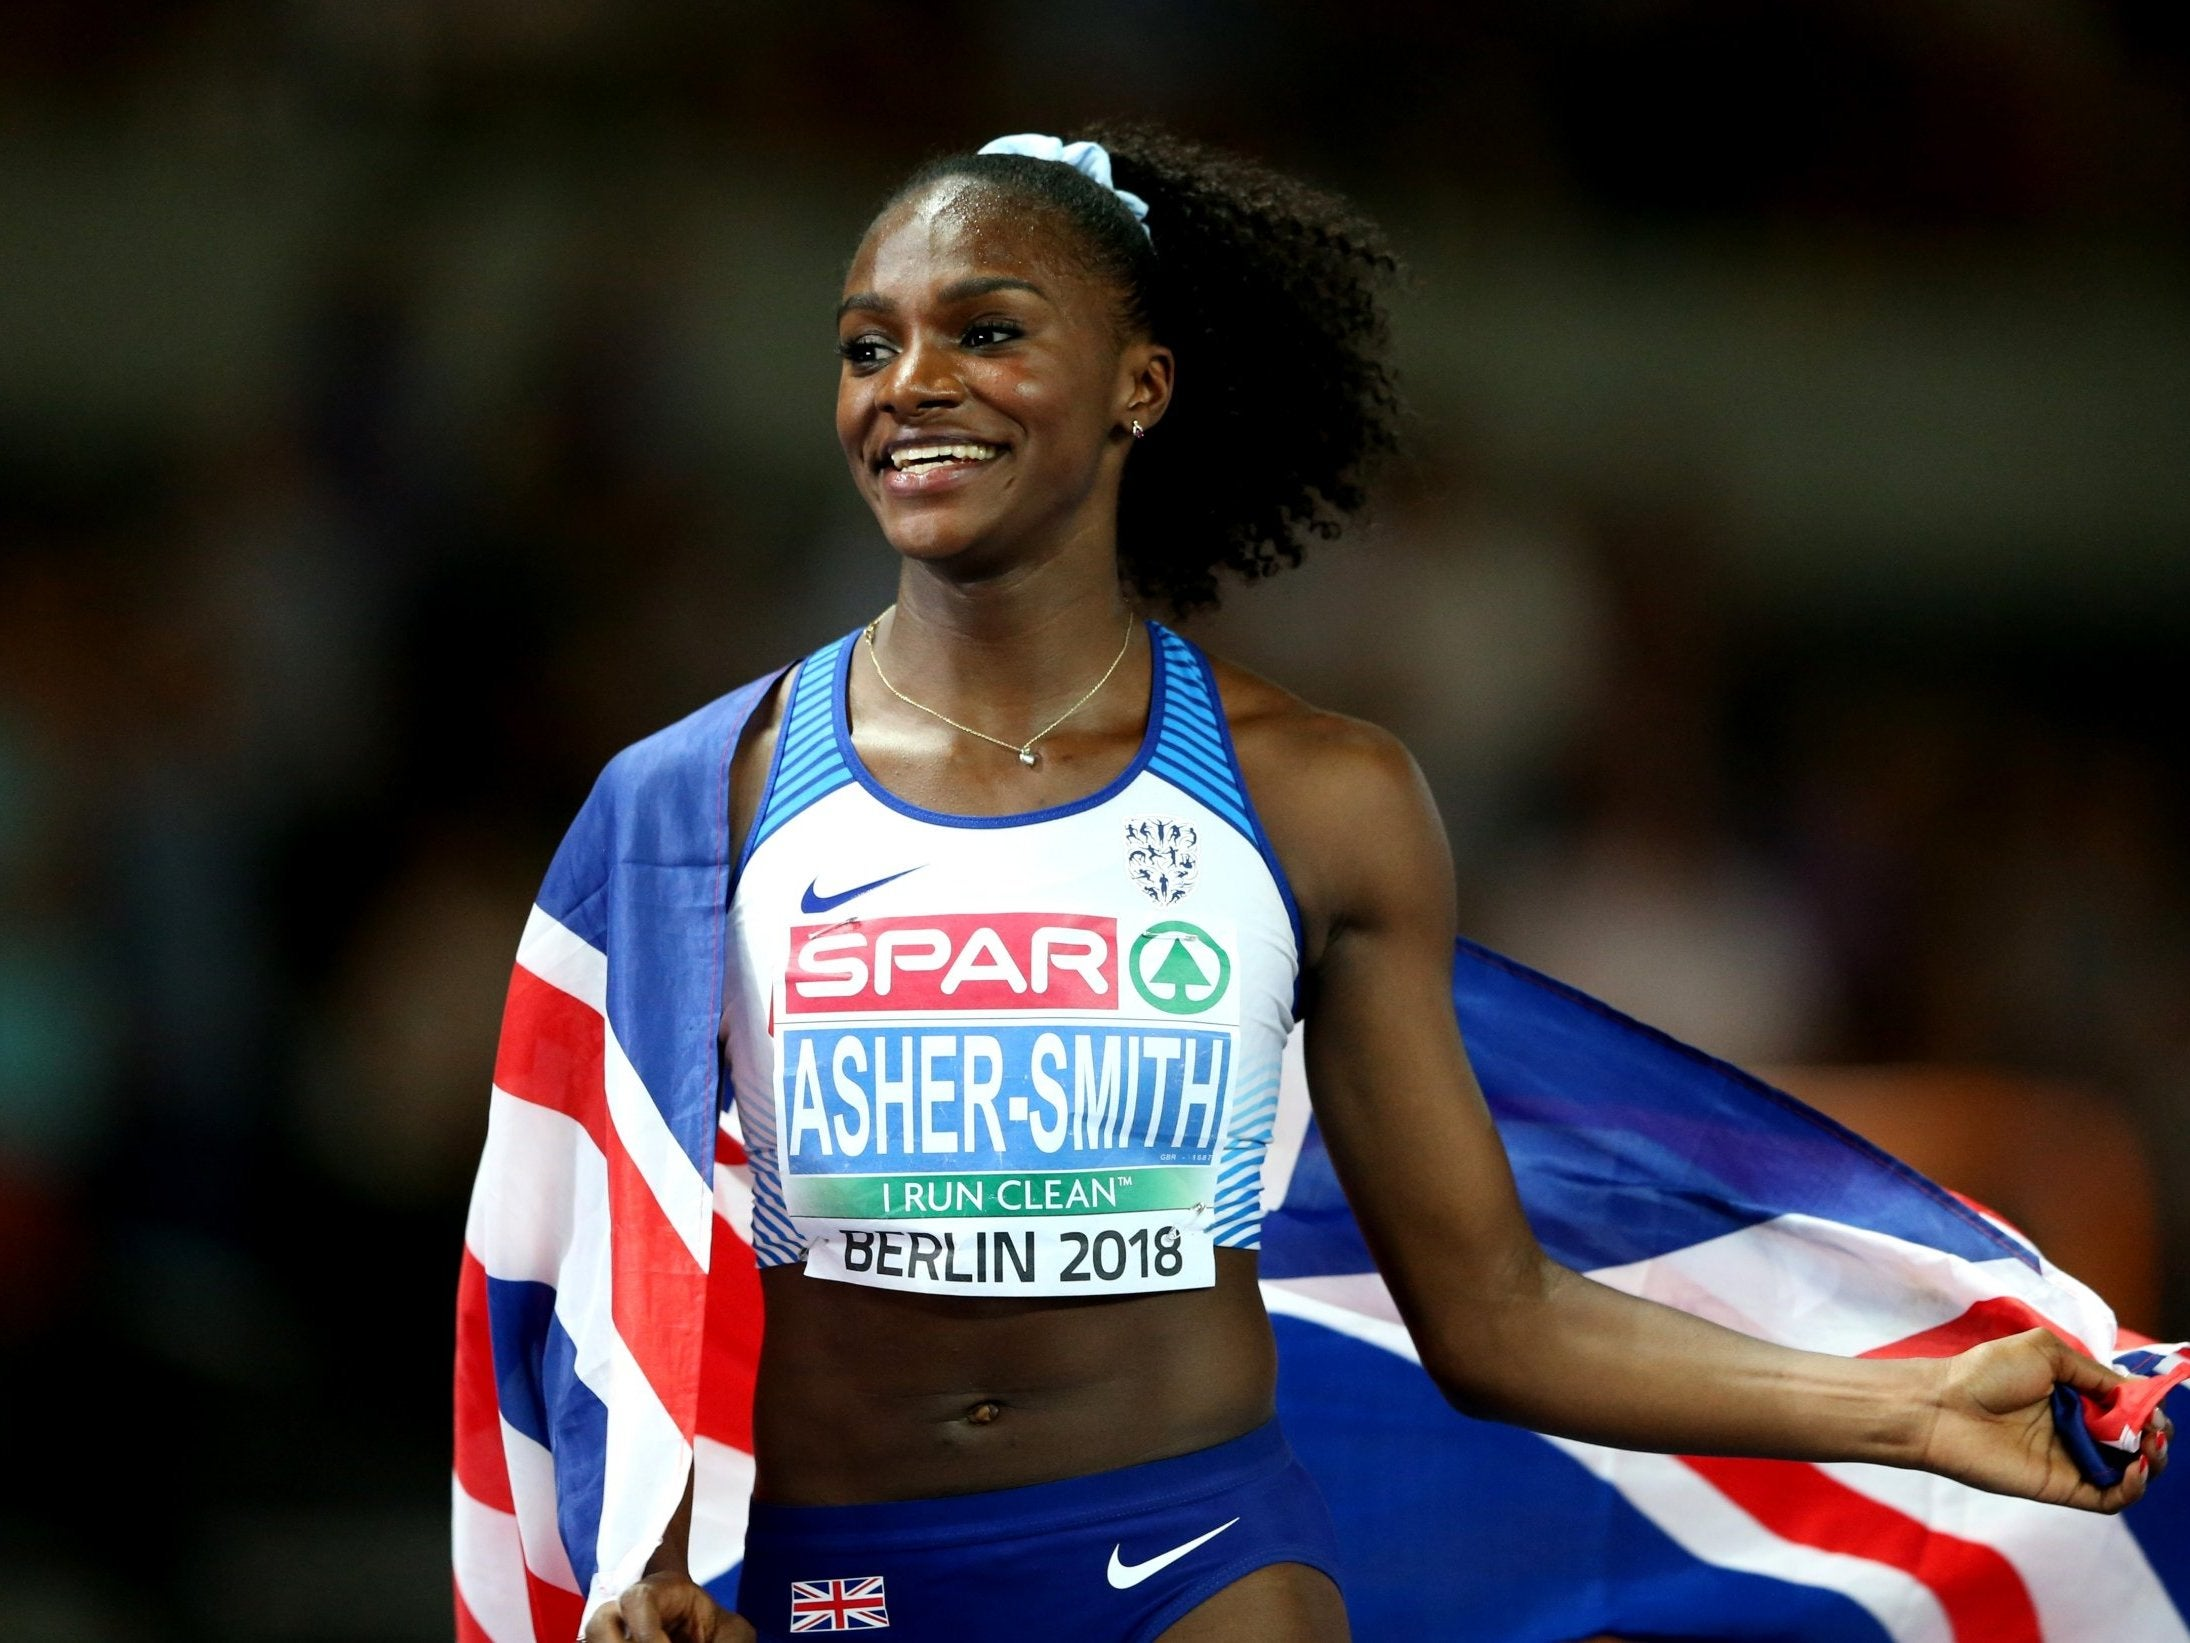 ICloud Dina Asher-Smith nudes (73 photos), Pussy, Fappening, Twitter, braless 2006